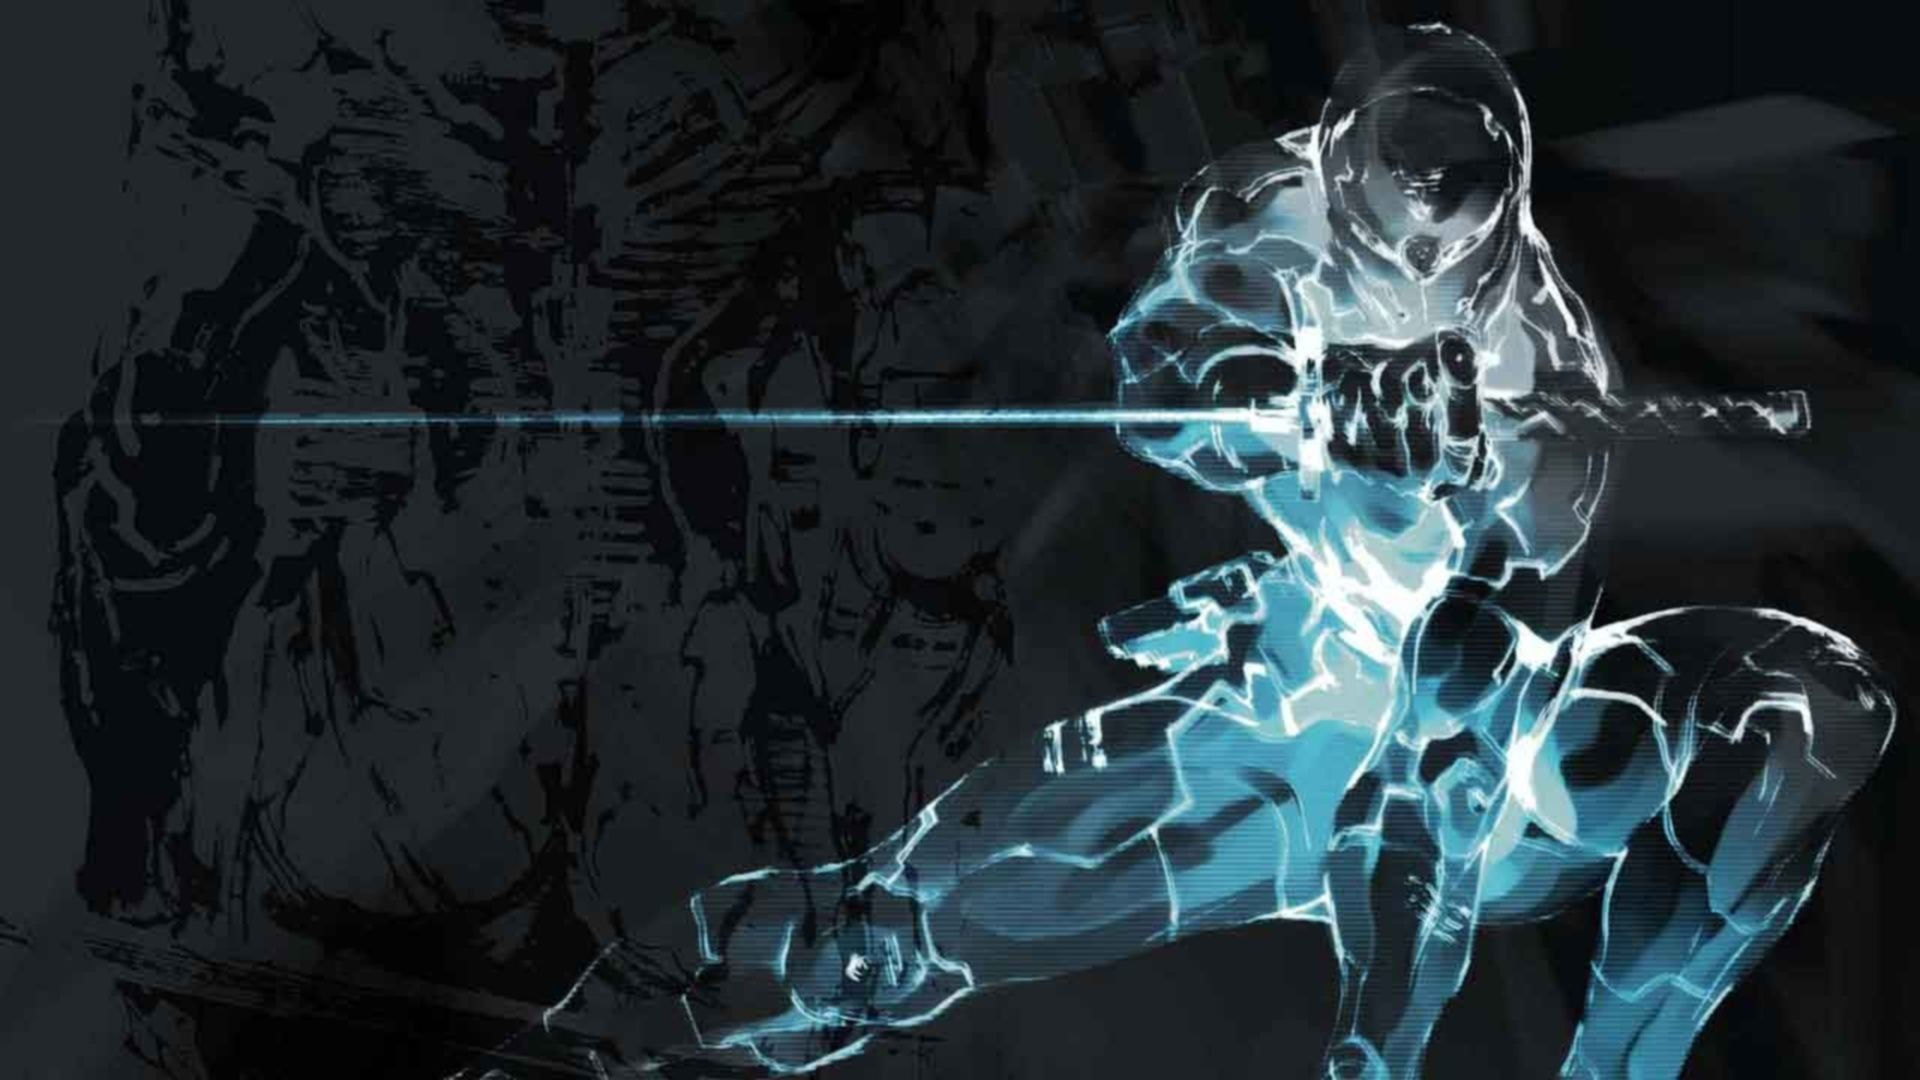 Res: 1920x1080, Recommended: Metal Gear Wallpapers 07.06.16, Felicita Collom – download for  free